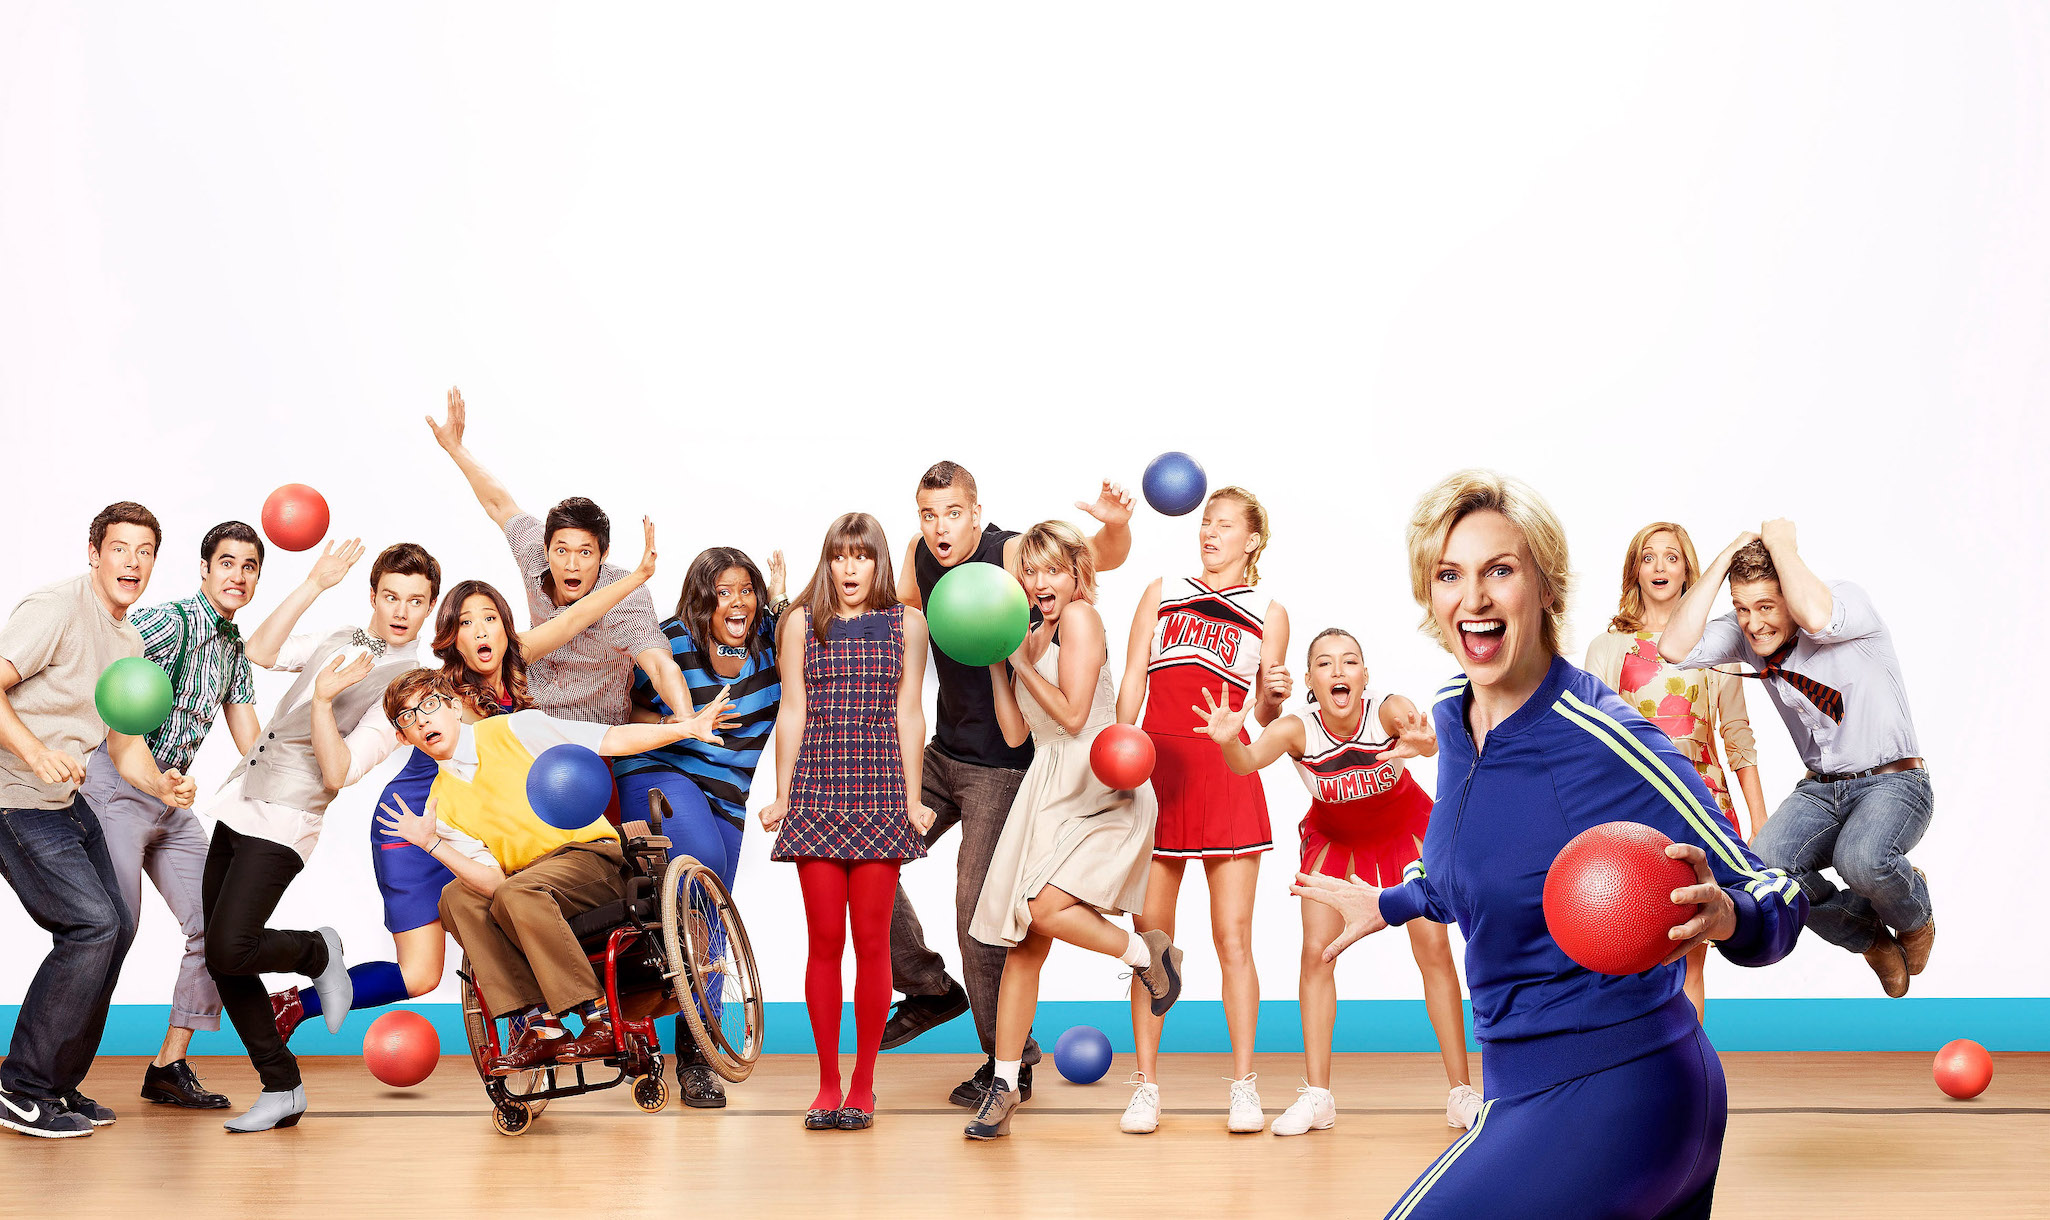 The New Directions of 'Glee' in a Season 3 promo photo.